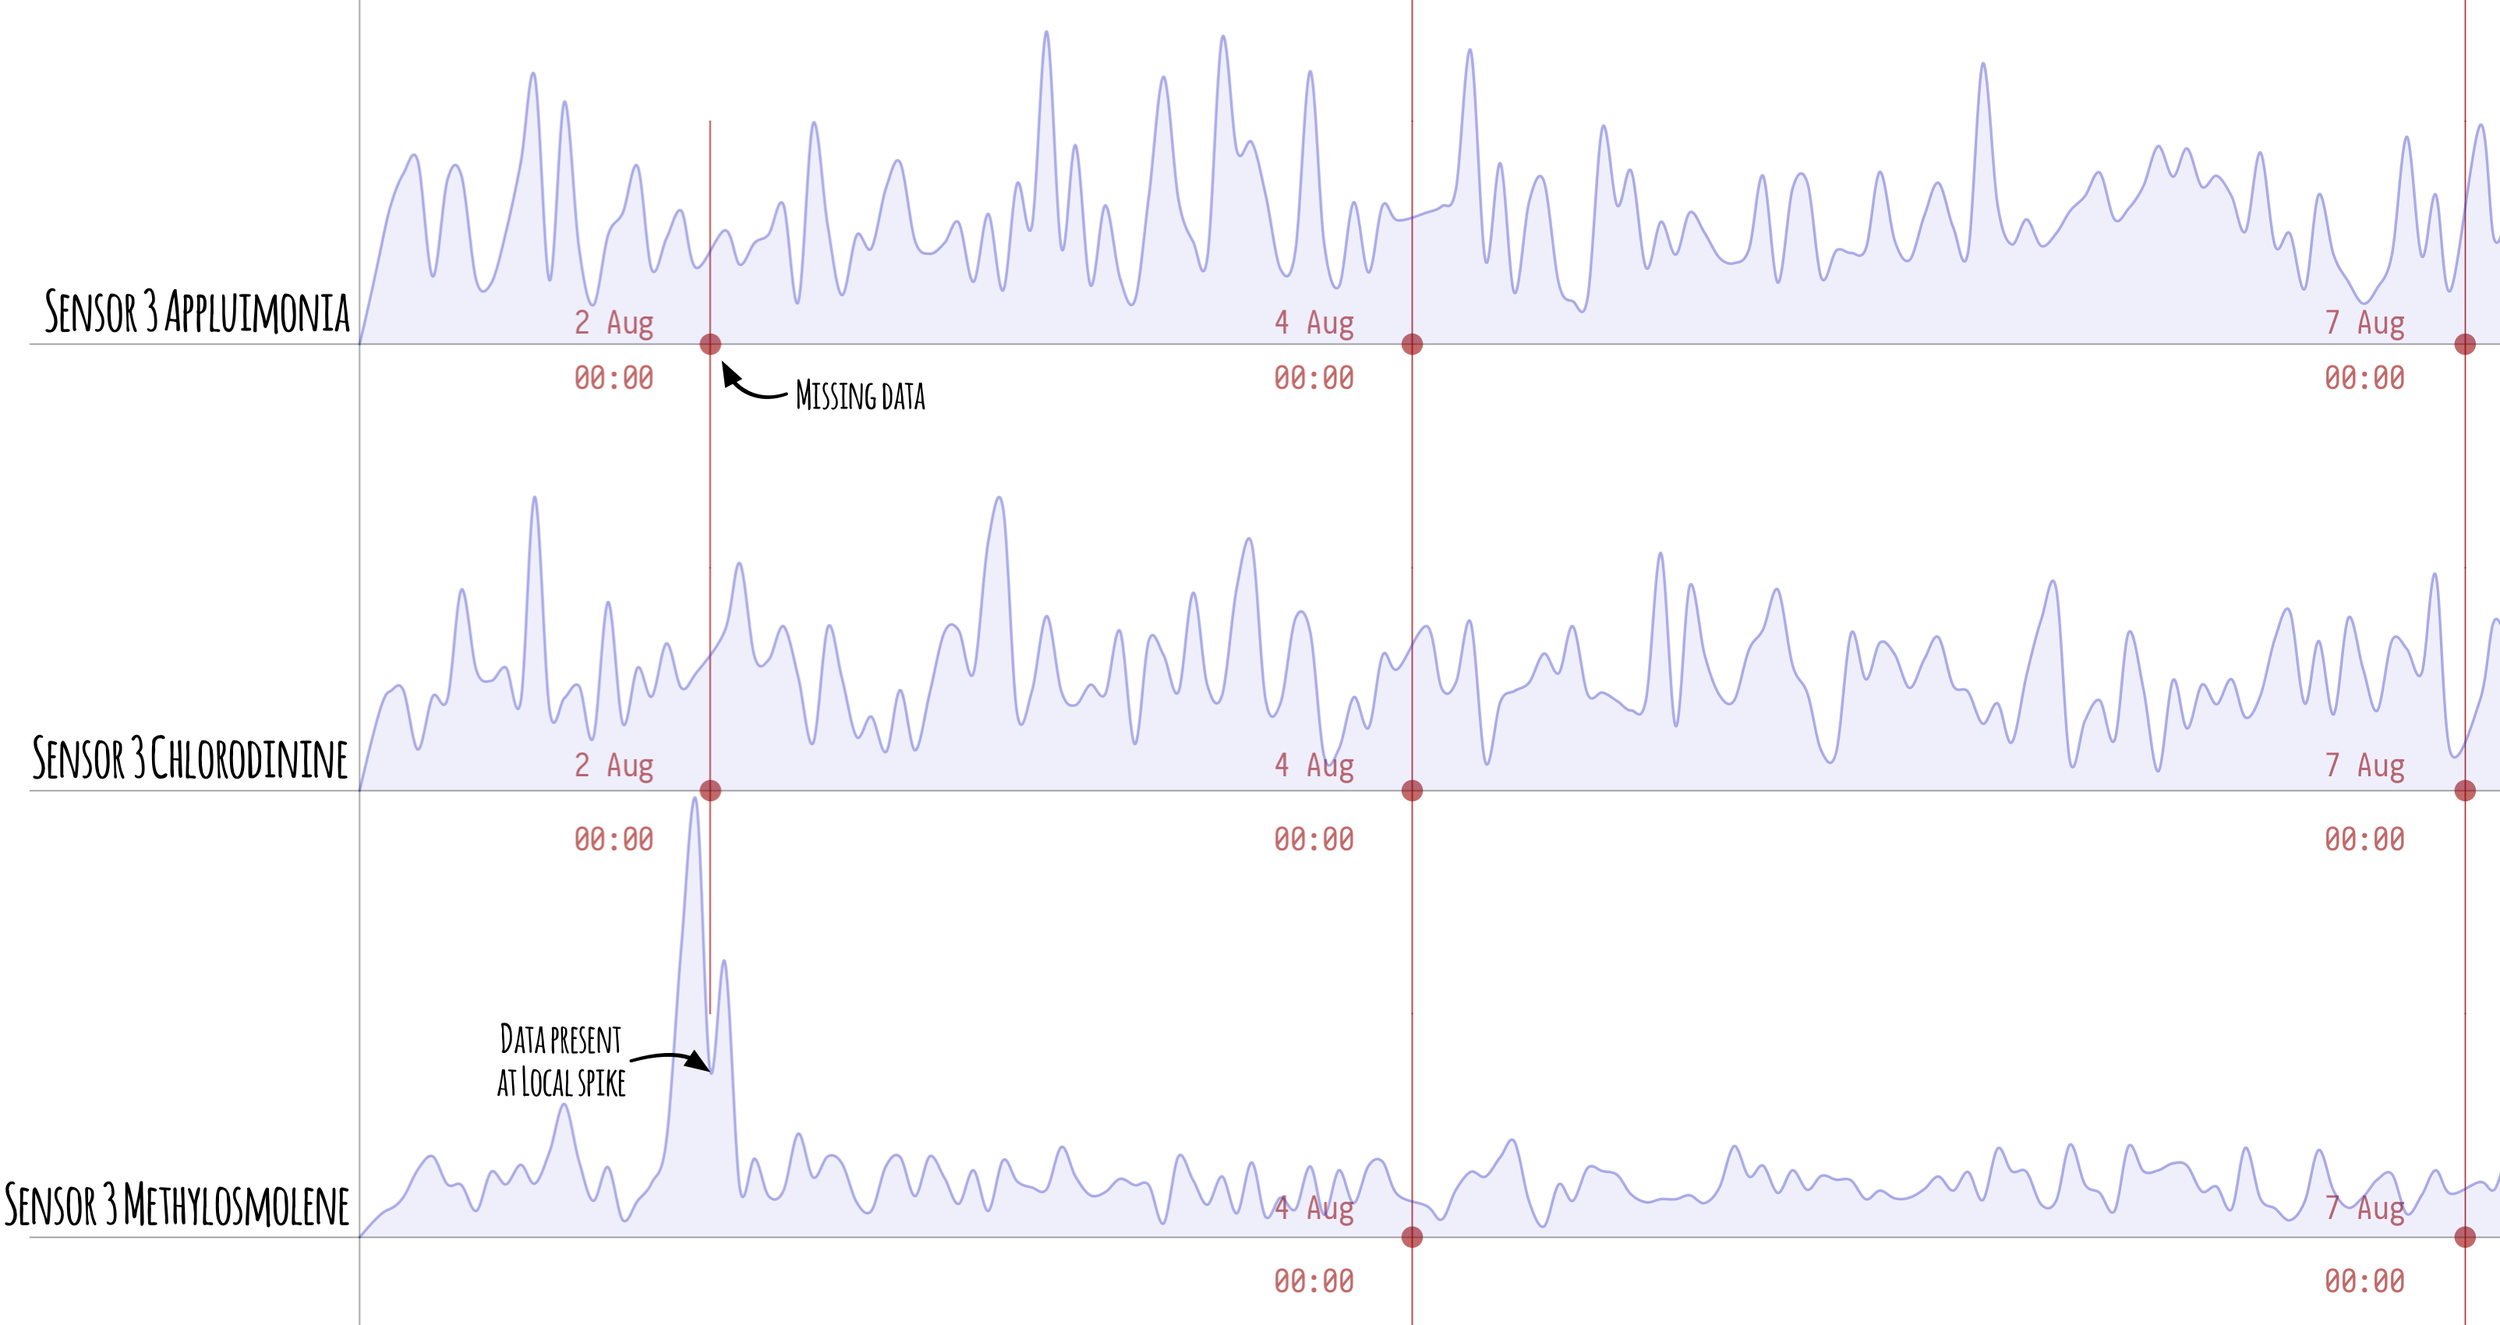 Figure 3  -Zoomed in Sensor 3 chart showing exception to 2nd August data gap coincides with Methylosmolene spike.